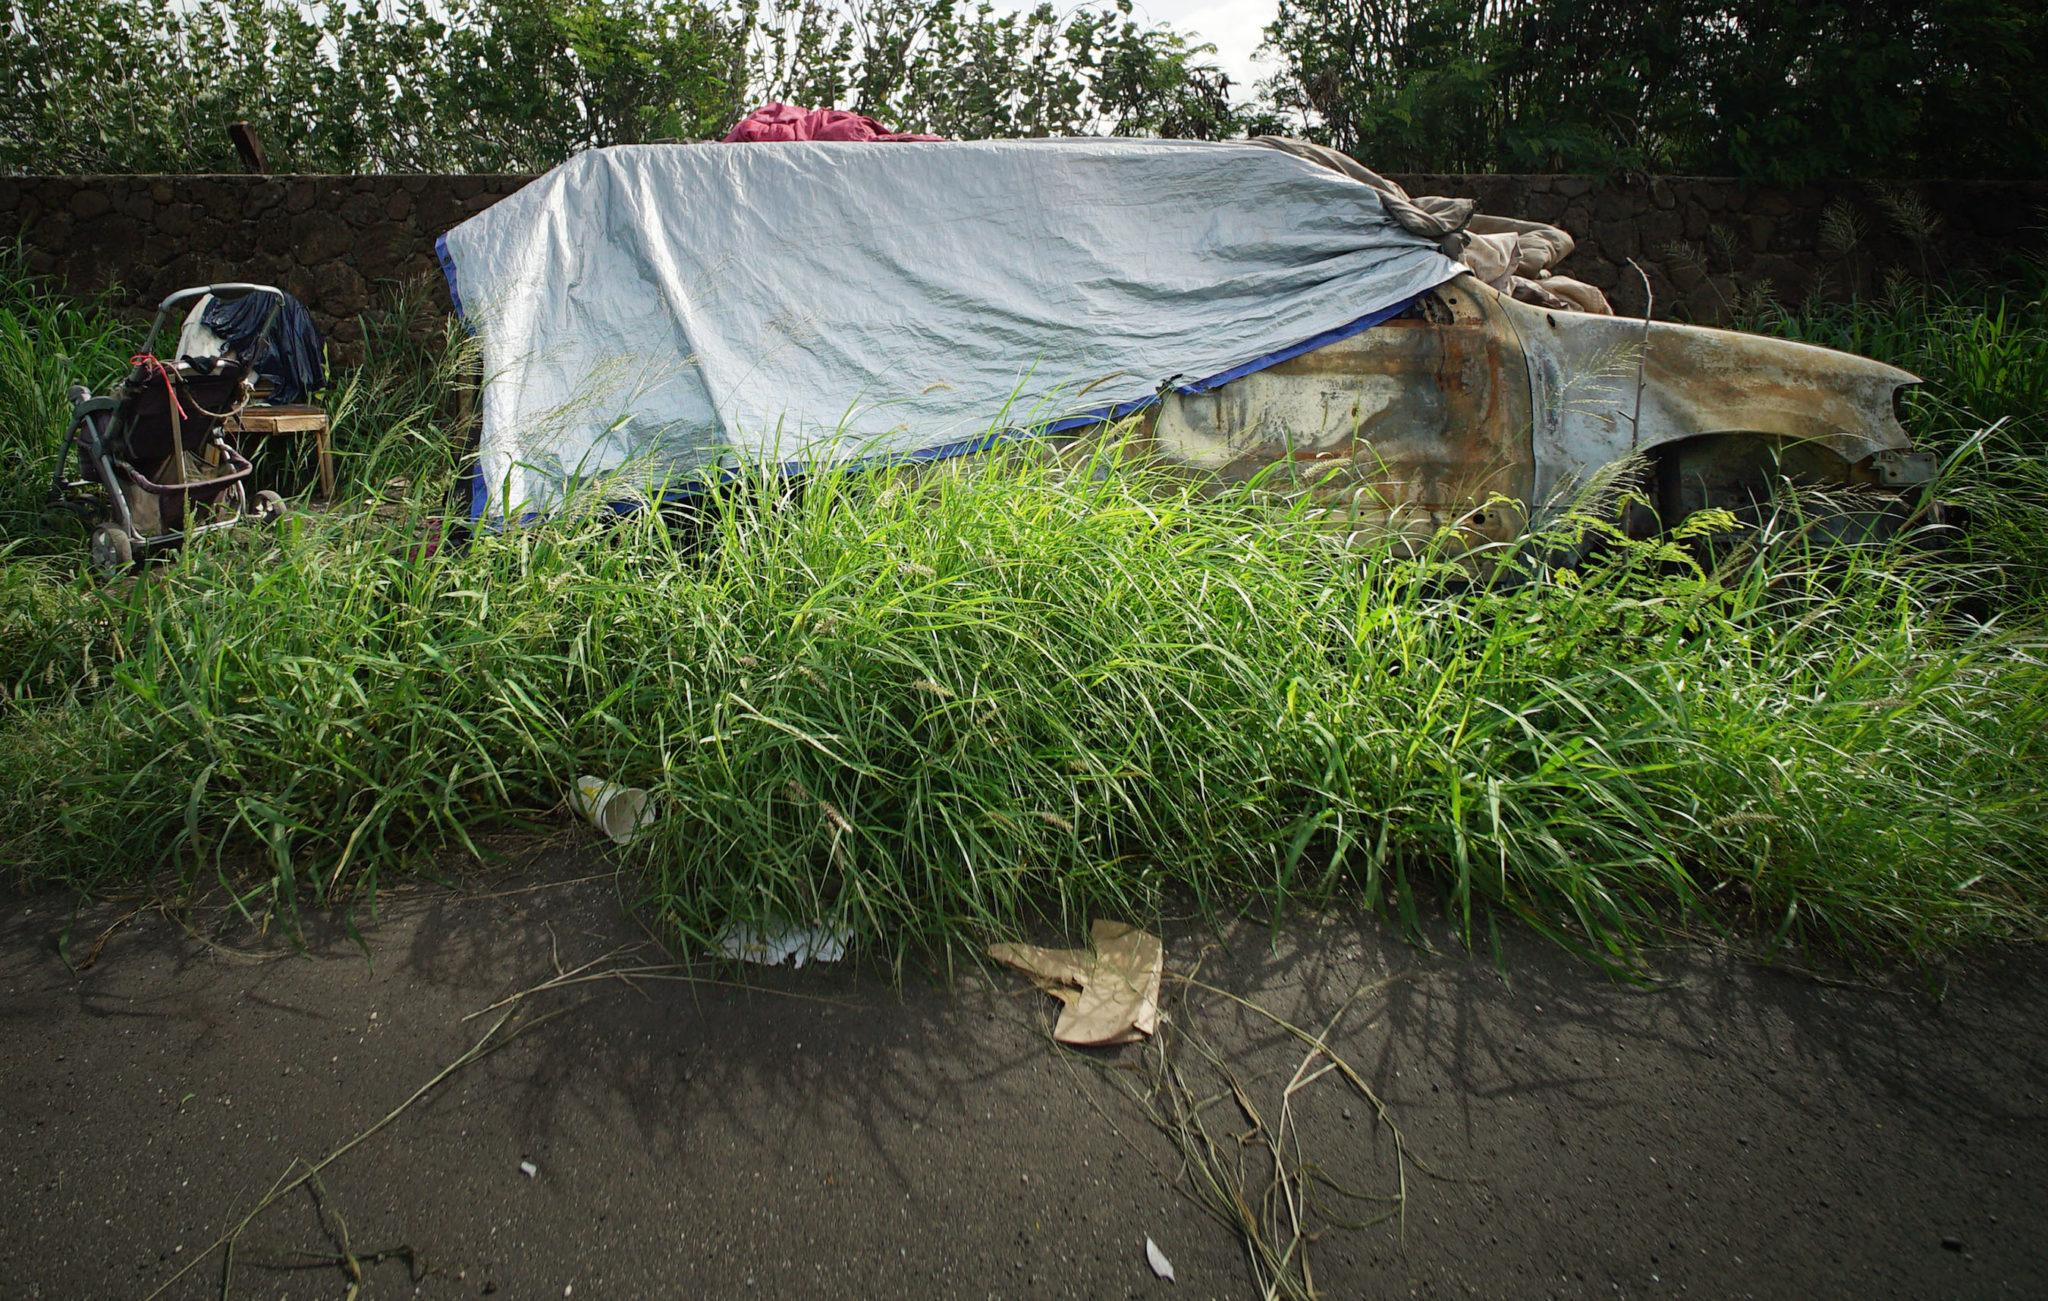 <p>With a tarp for a roof, this vehicle alongside Kaukamana Road in Waianae may be someone's temporary shelter.</p>